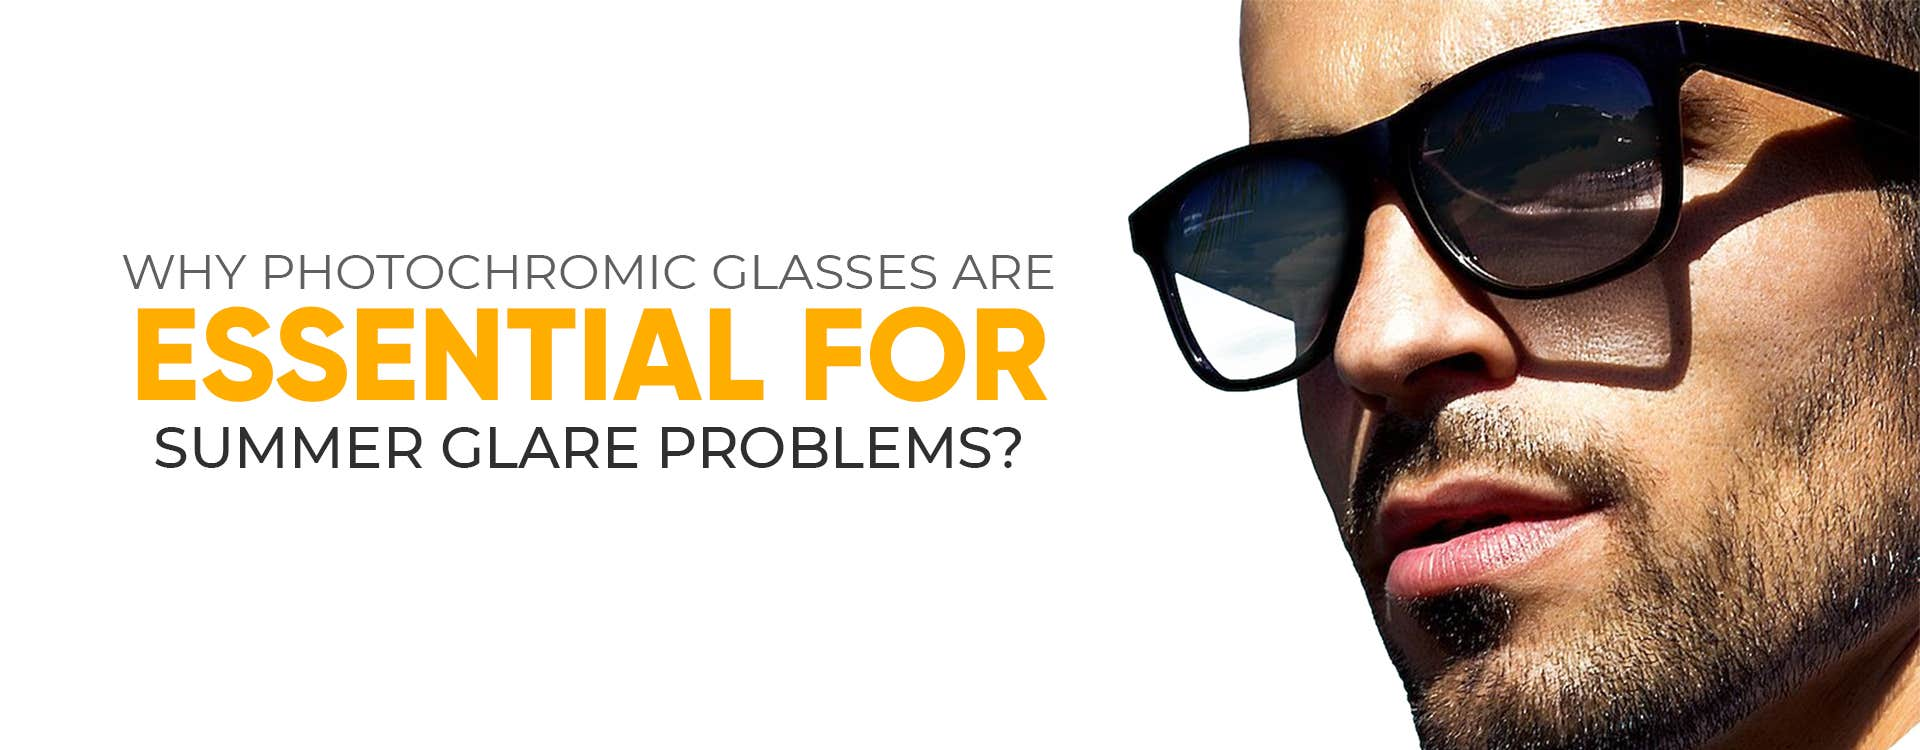 Why Photochromic Glasses Are Essential For The Summer Glare Problems?